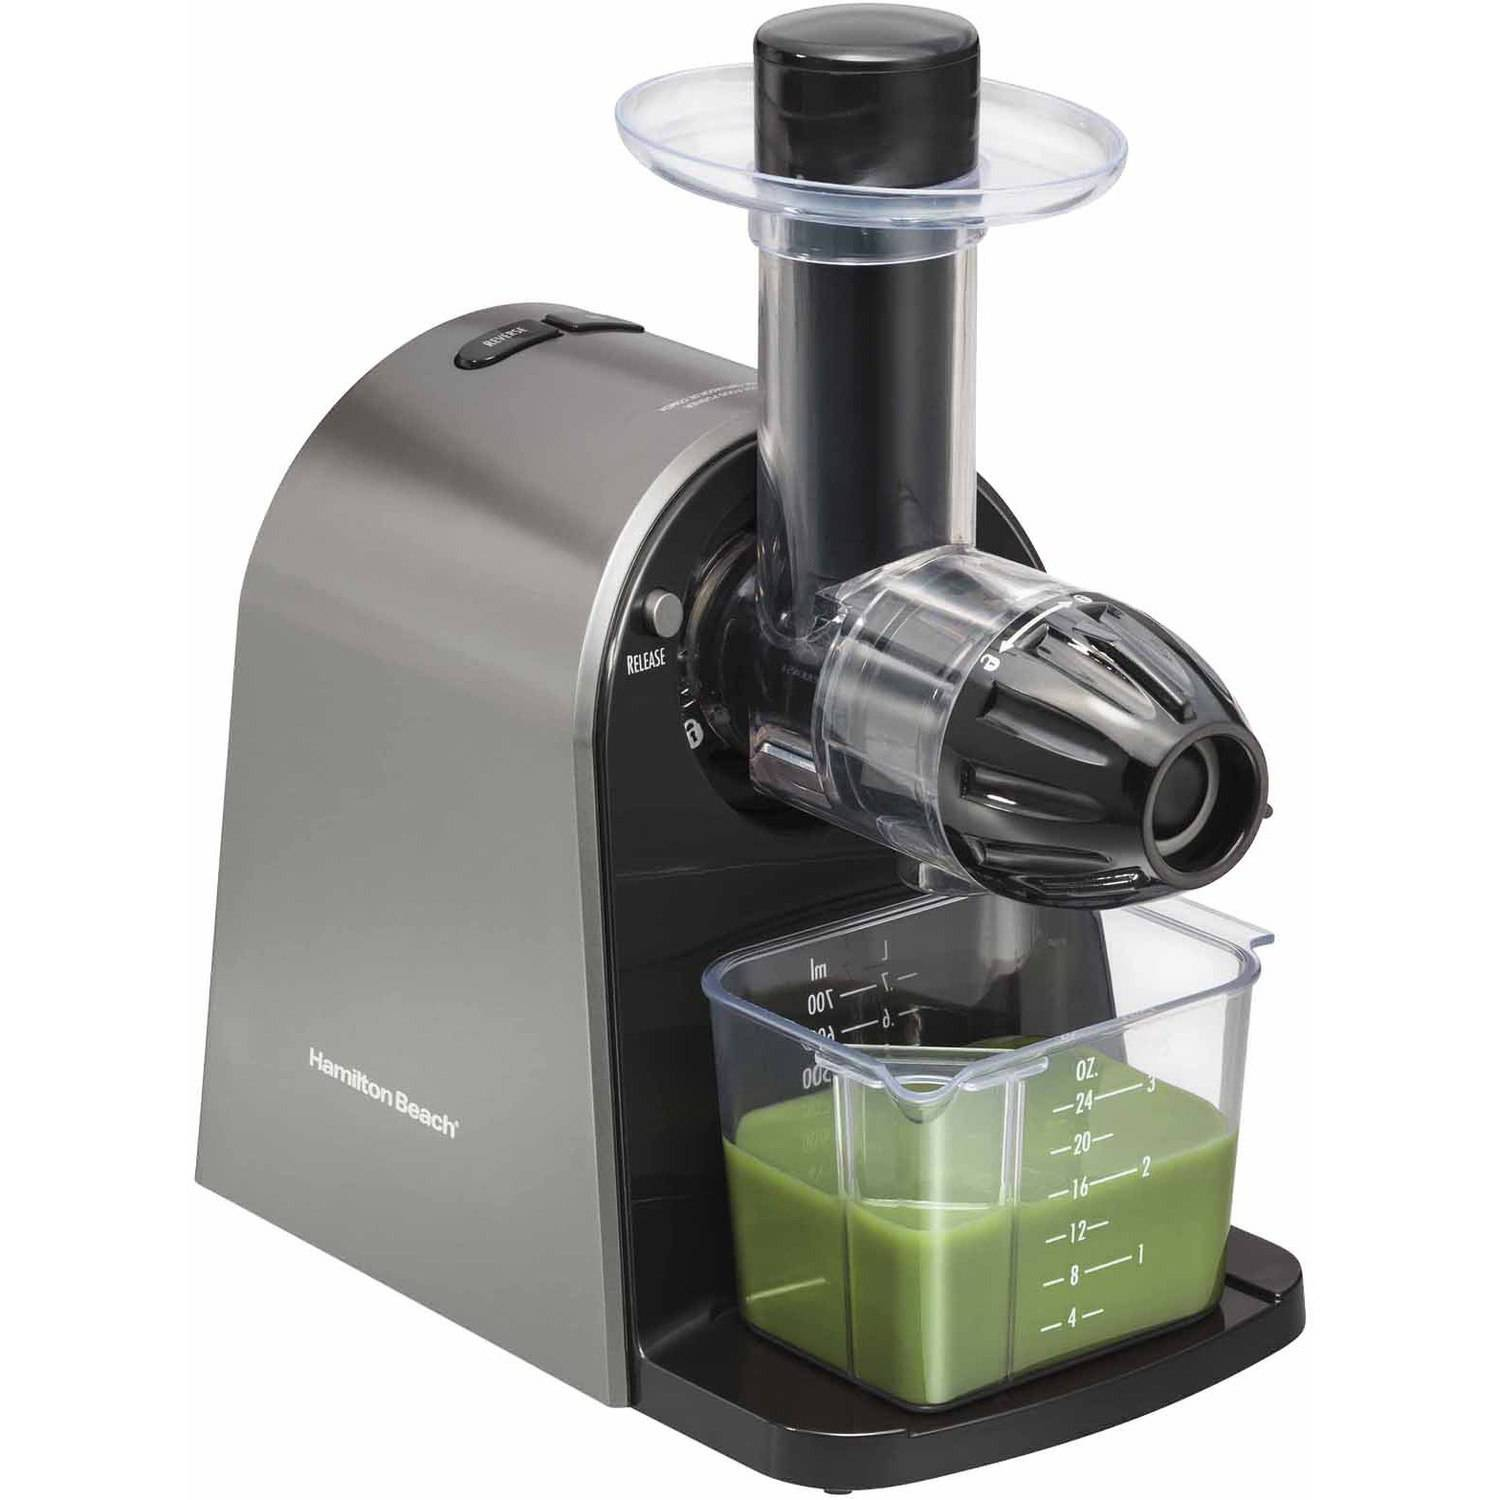 Slow Juicer And Cold Press : Cold Press Juicer Machine - Masticating Juicer Slow Juice ...